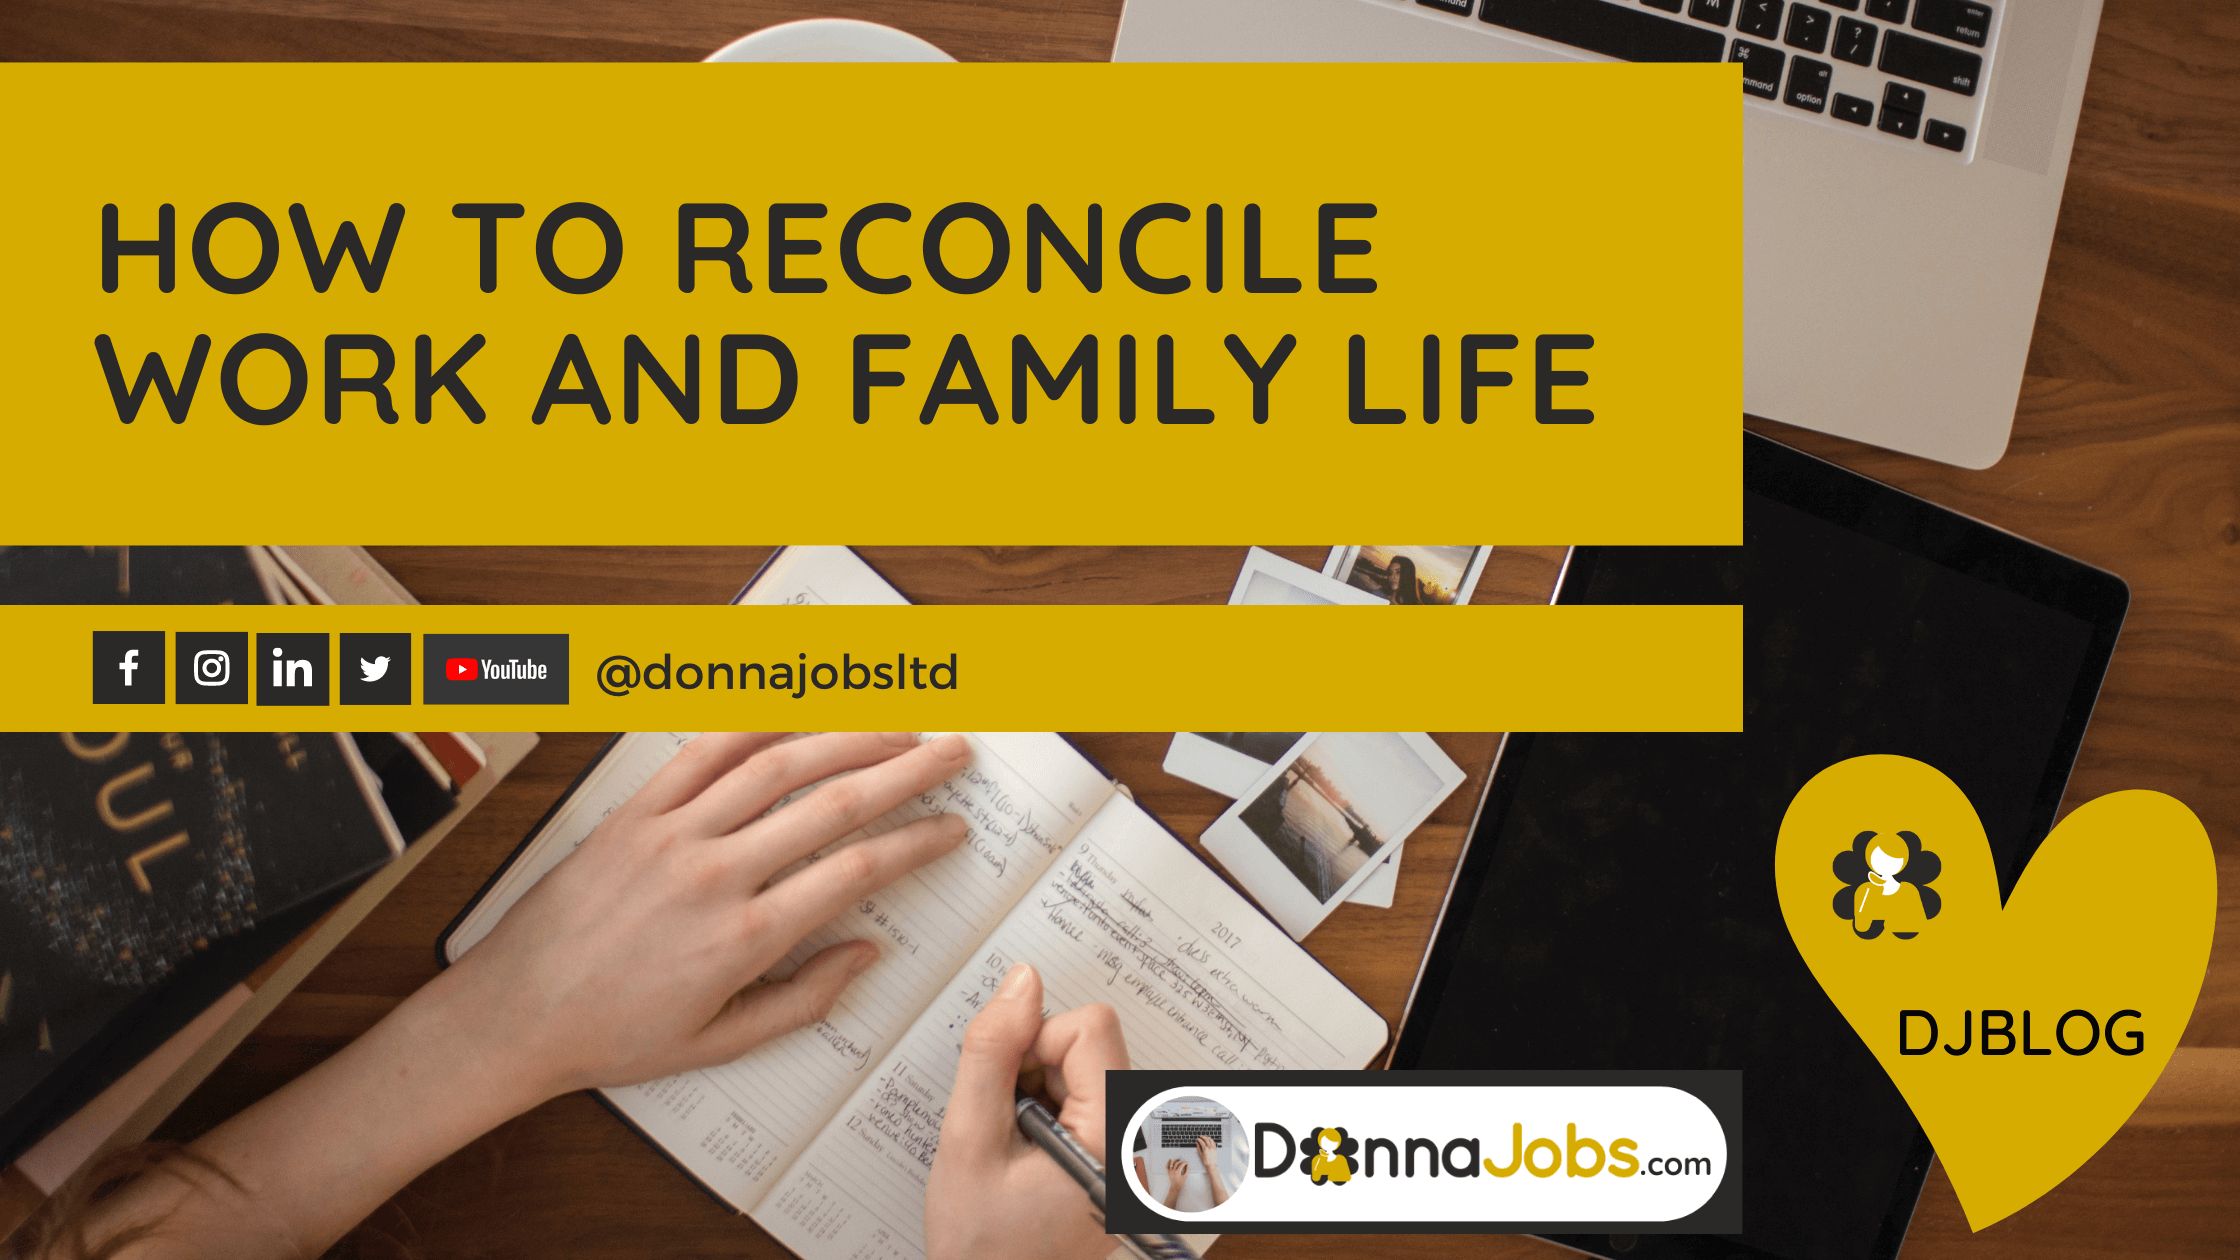 DonnaJobs helps you to reconcile work and family life